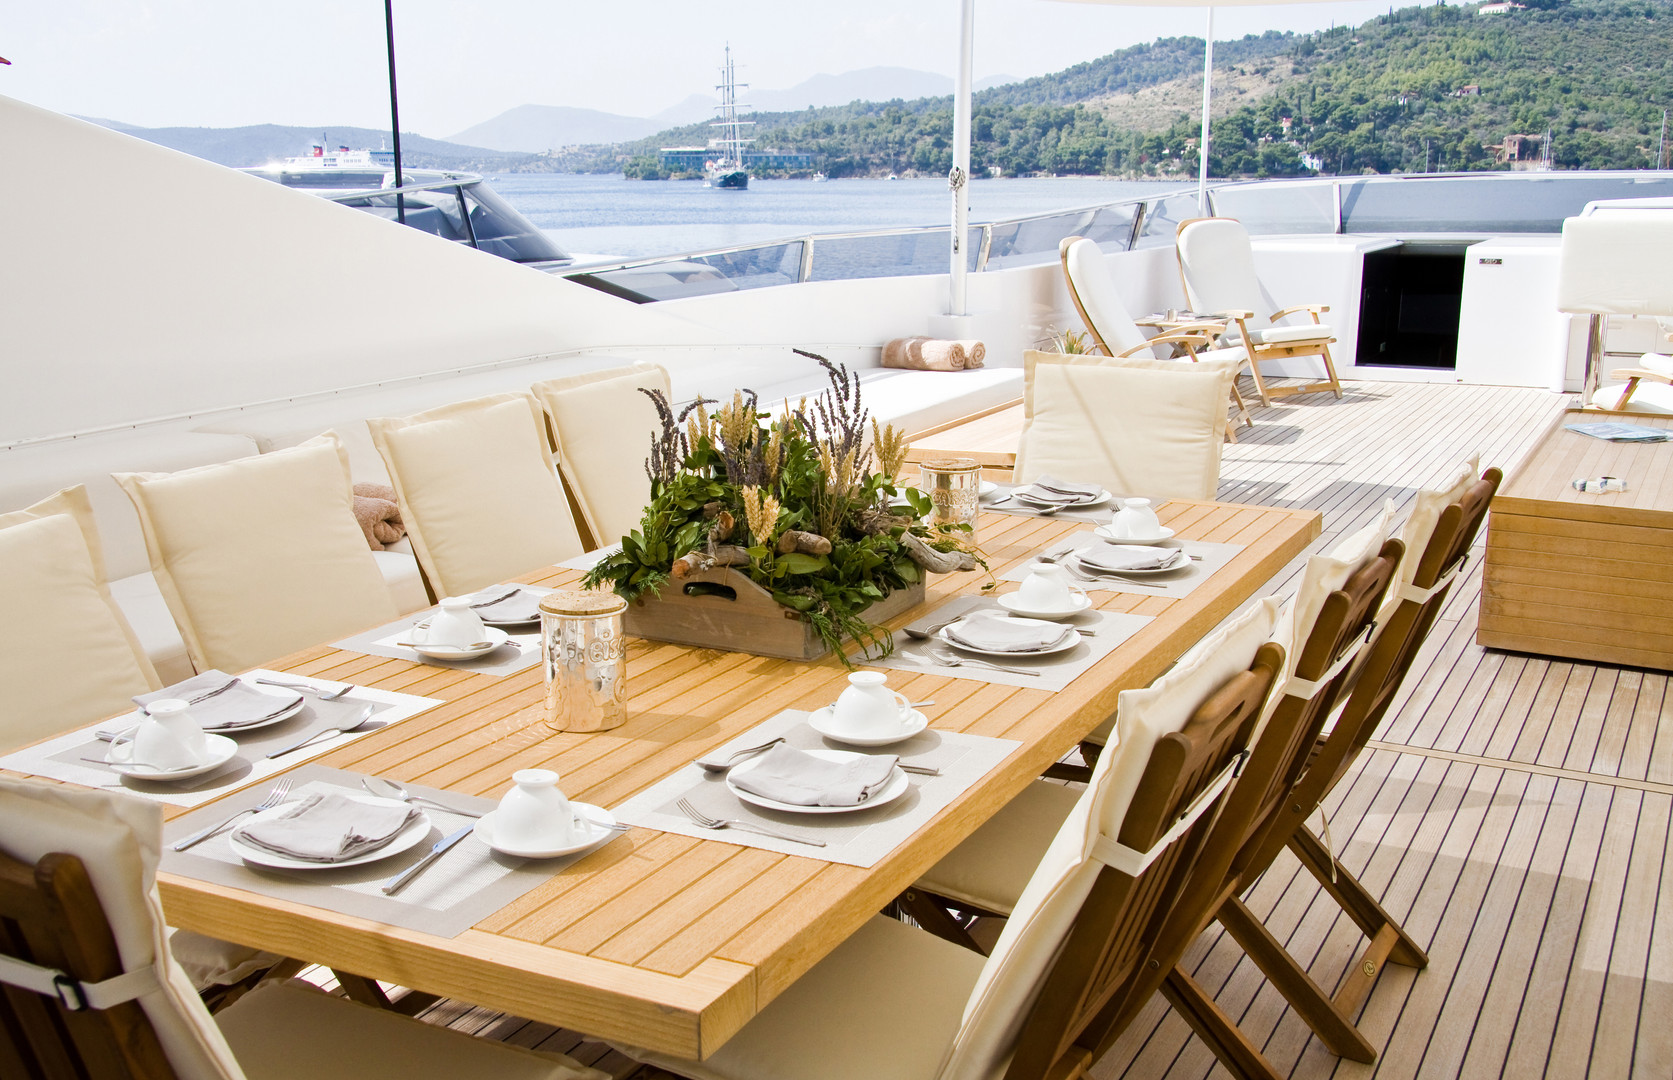 Summer day yacht deck with served table.